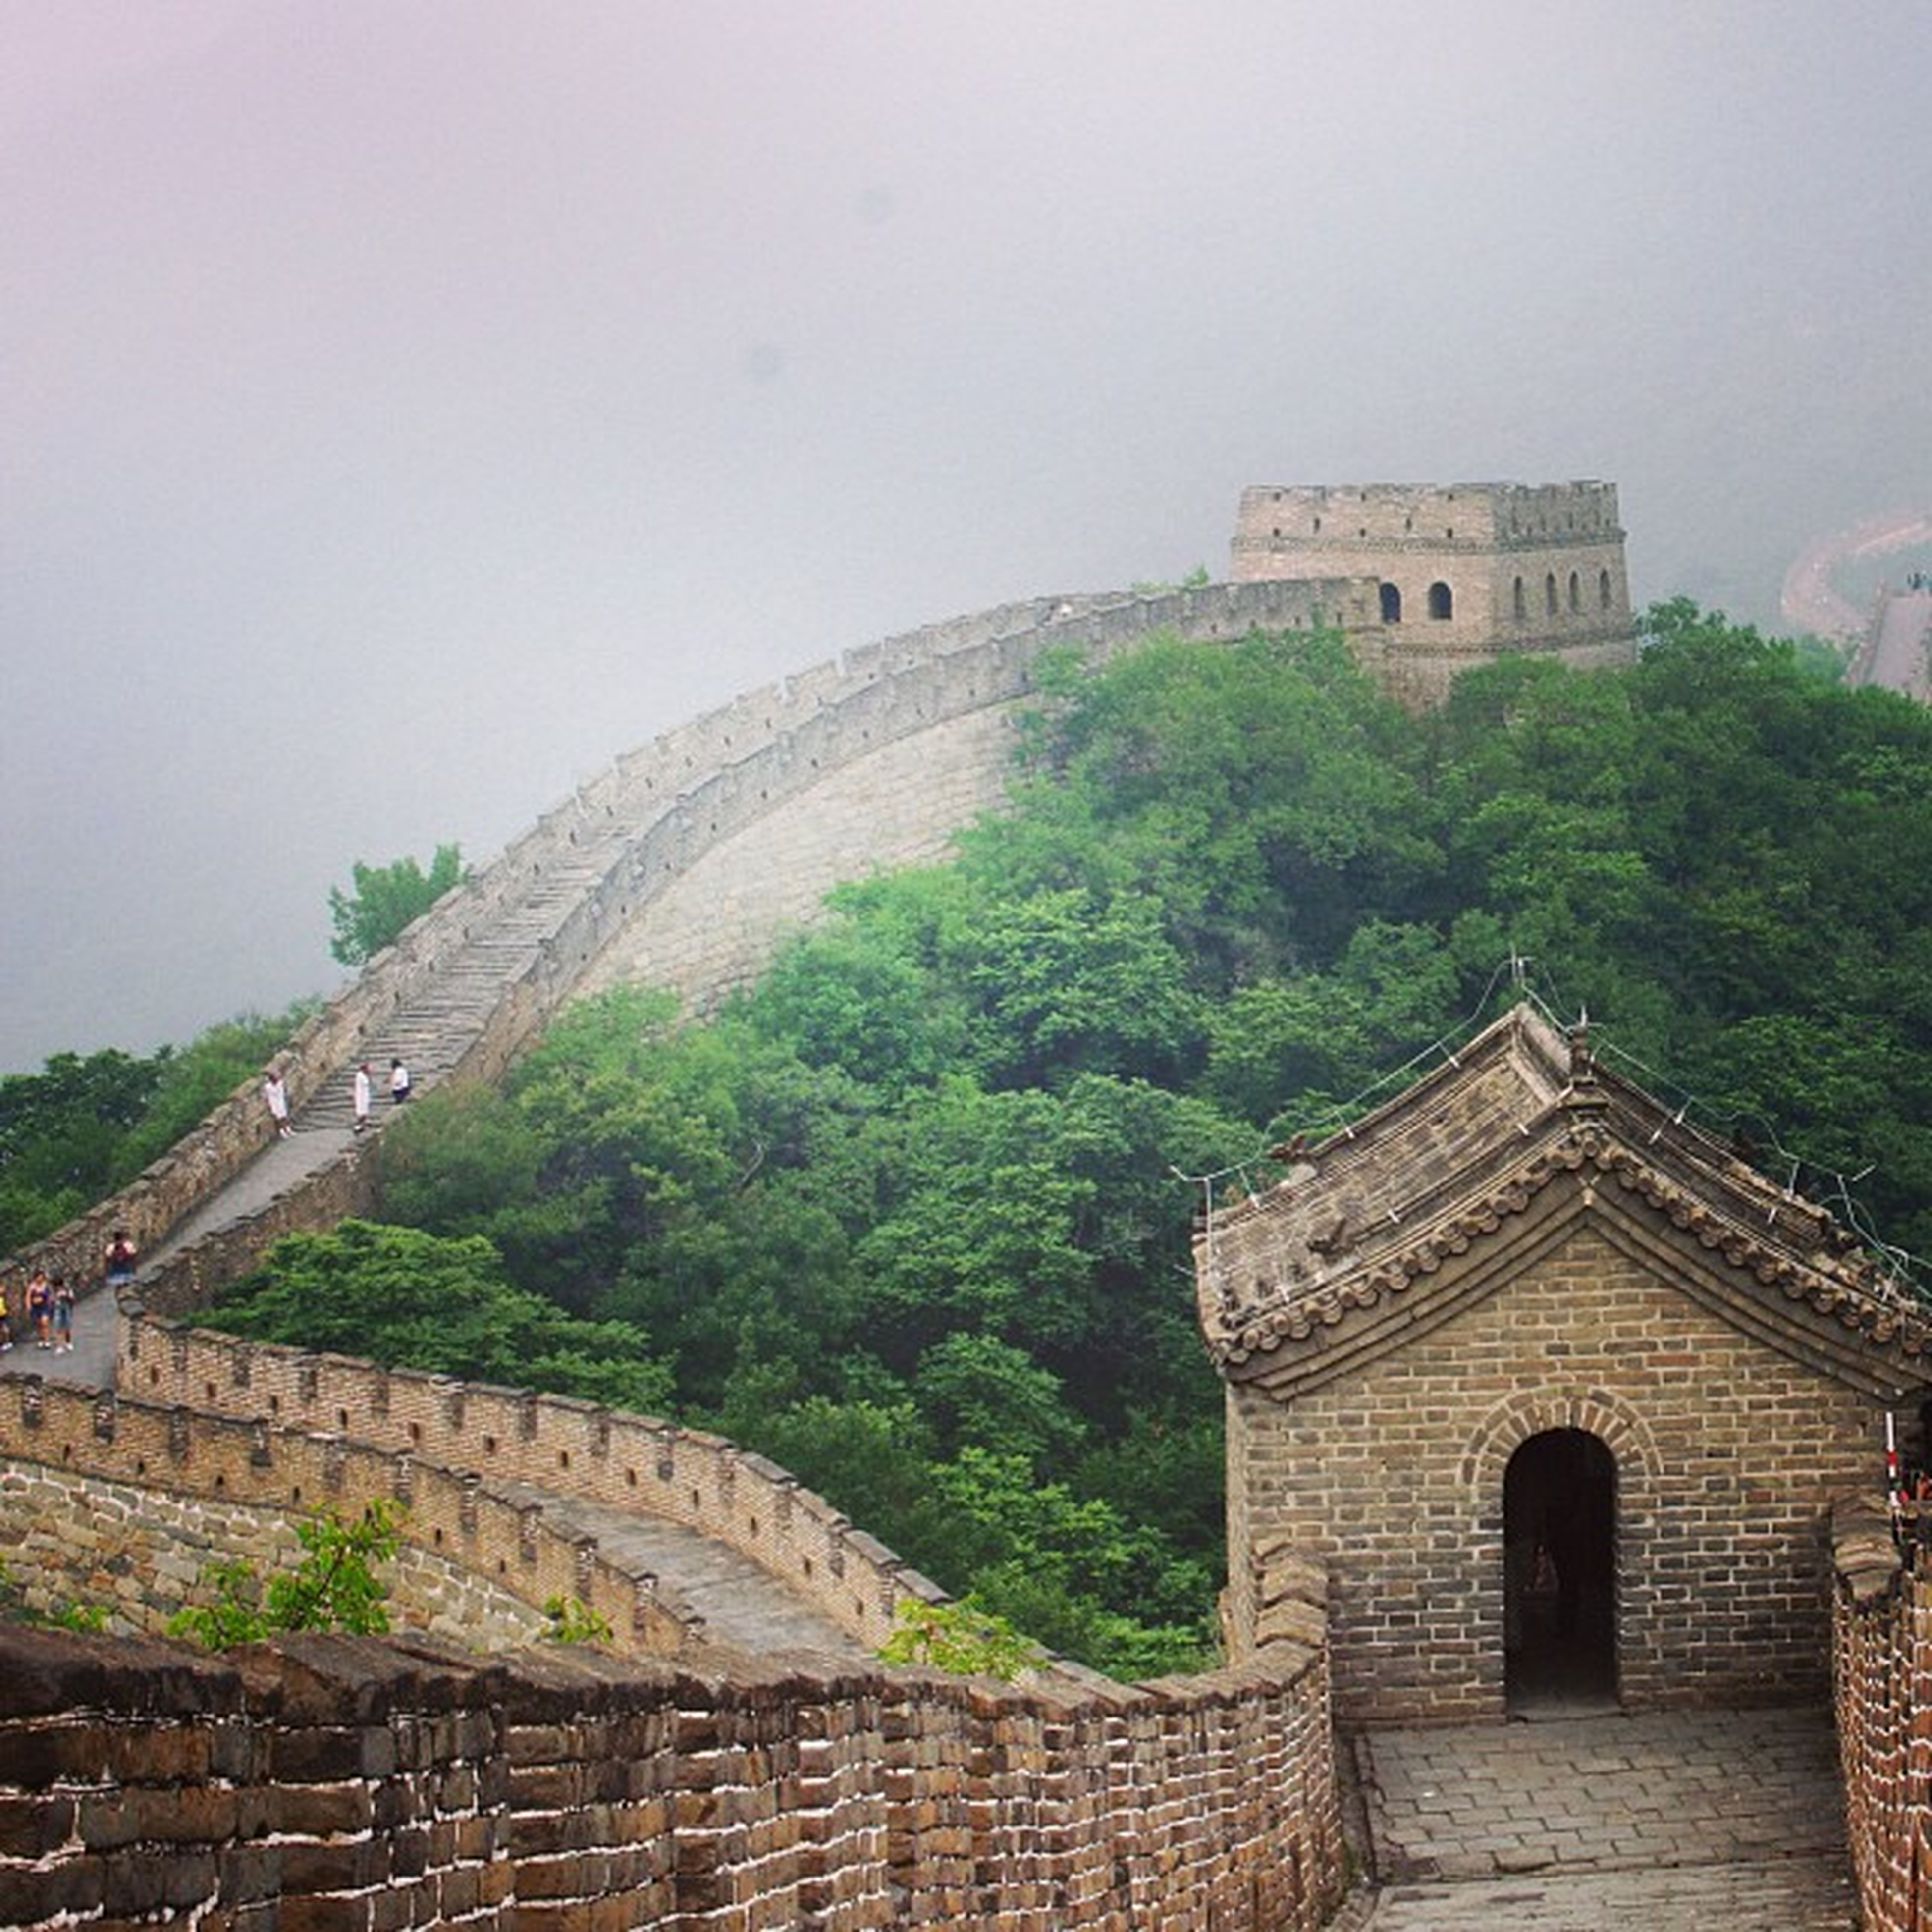 architecture, built structure, tree, building exterior, history, arch, sky, clear sky, travel destinations, famous place, tourism, ancient, day, travel, old, outdoors, religion, the past, stone wall, low angle view